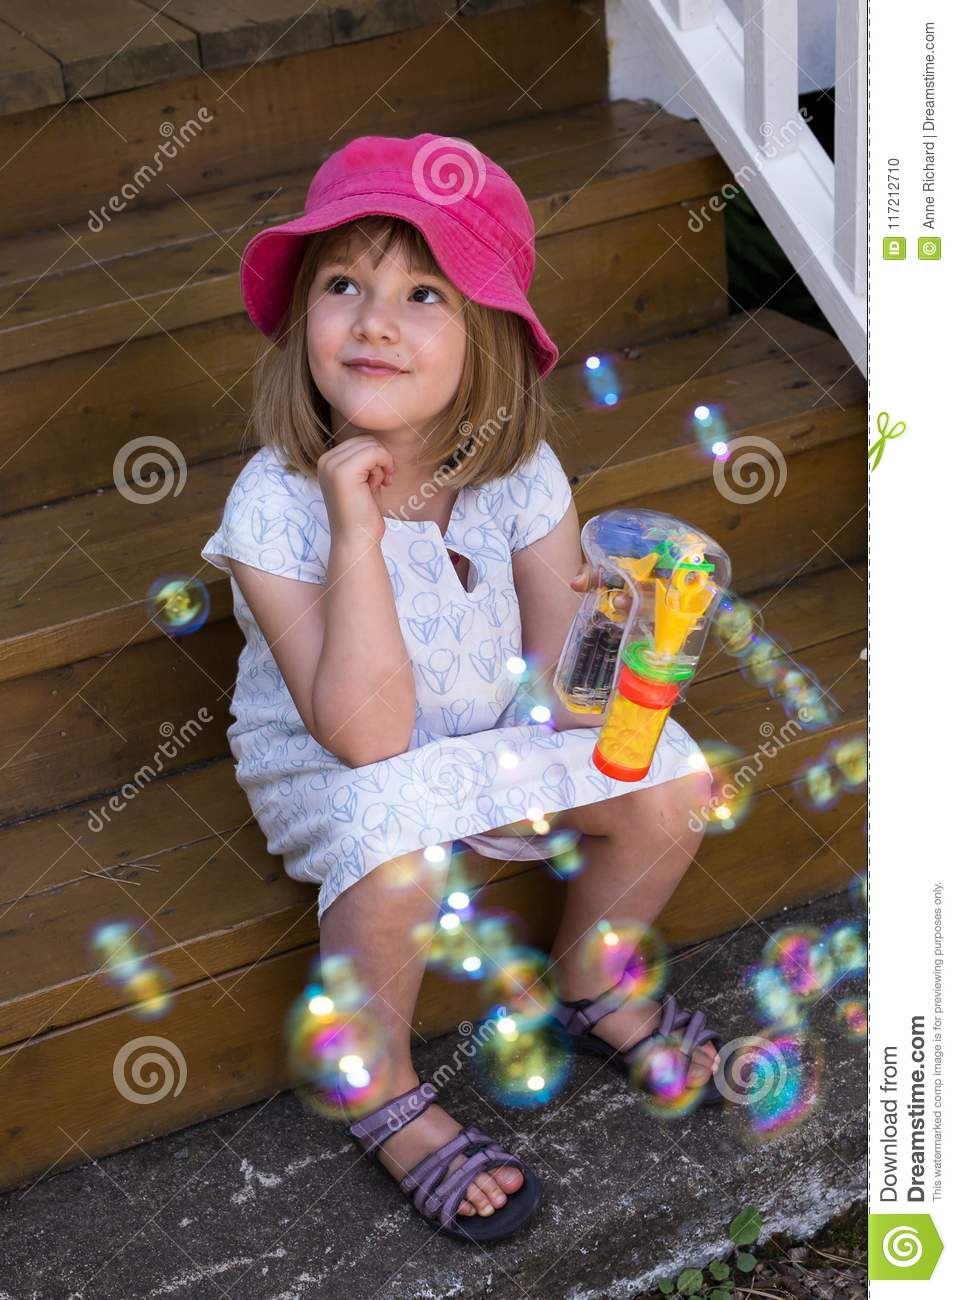 Cute little girl in summer dress sitting in stairs with soap bubbles